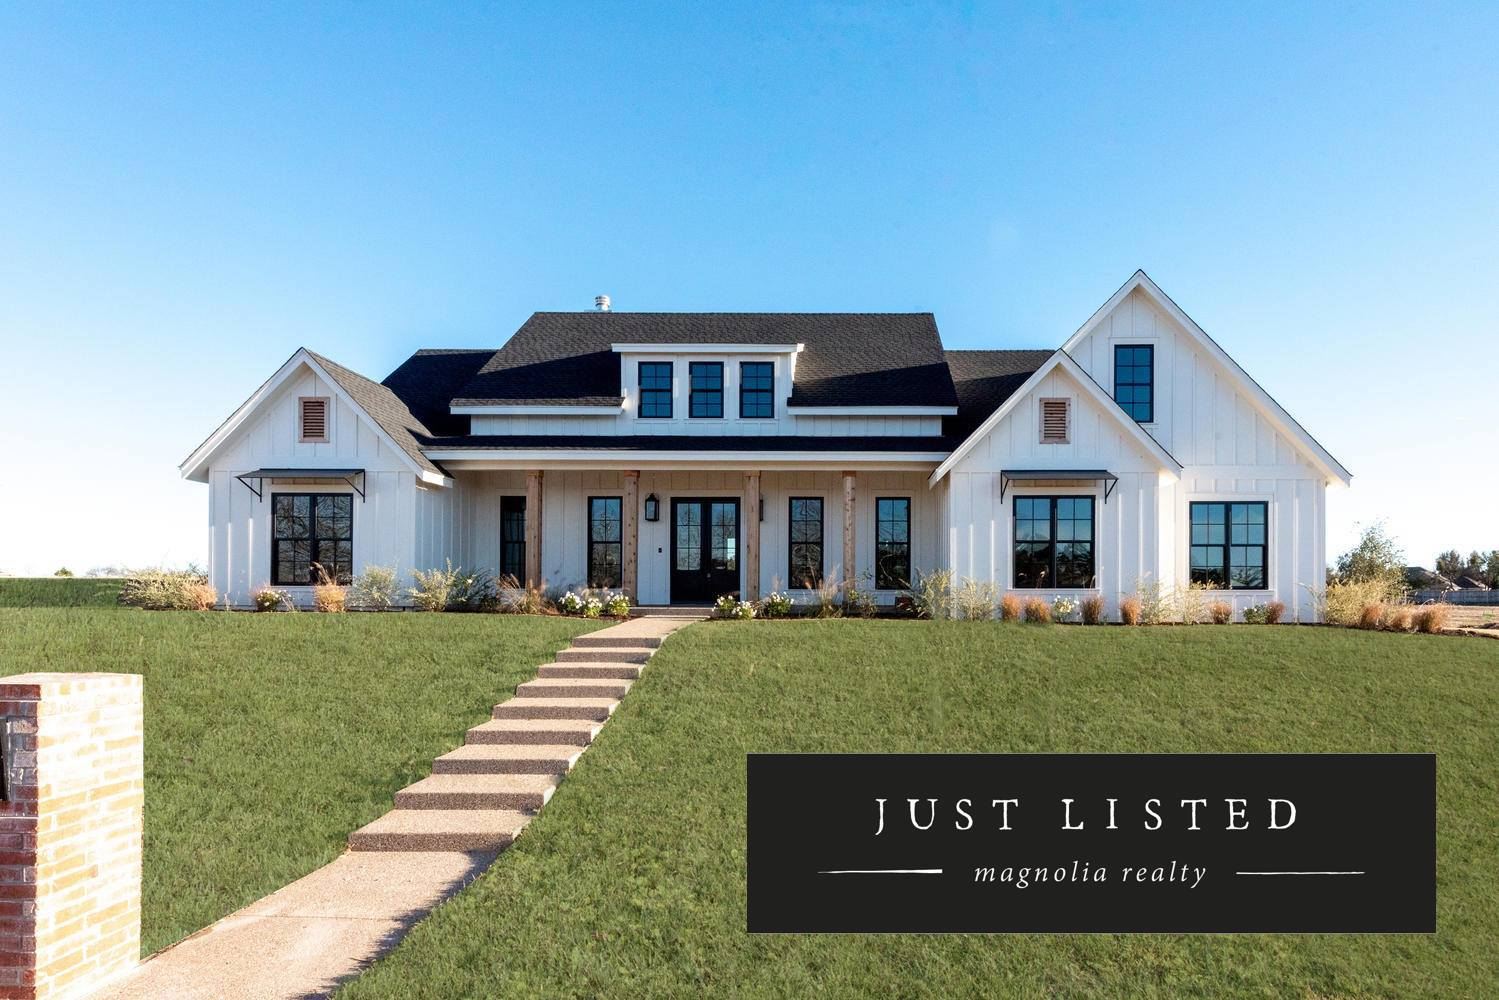 JUST LISTED | 120 Cresson Ct, China Spring, TX 76633 | 4 bed/4.5 bath | $624,900